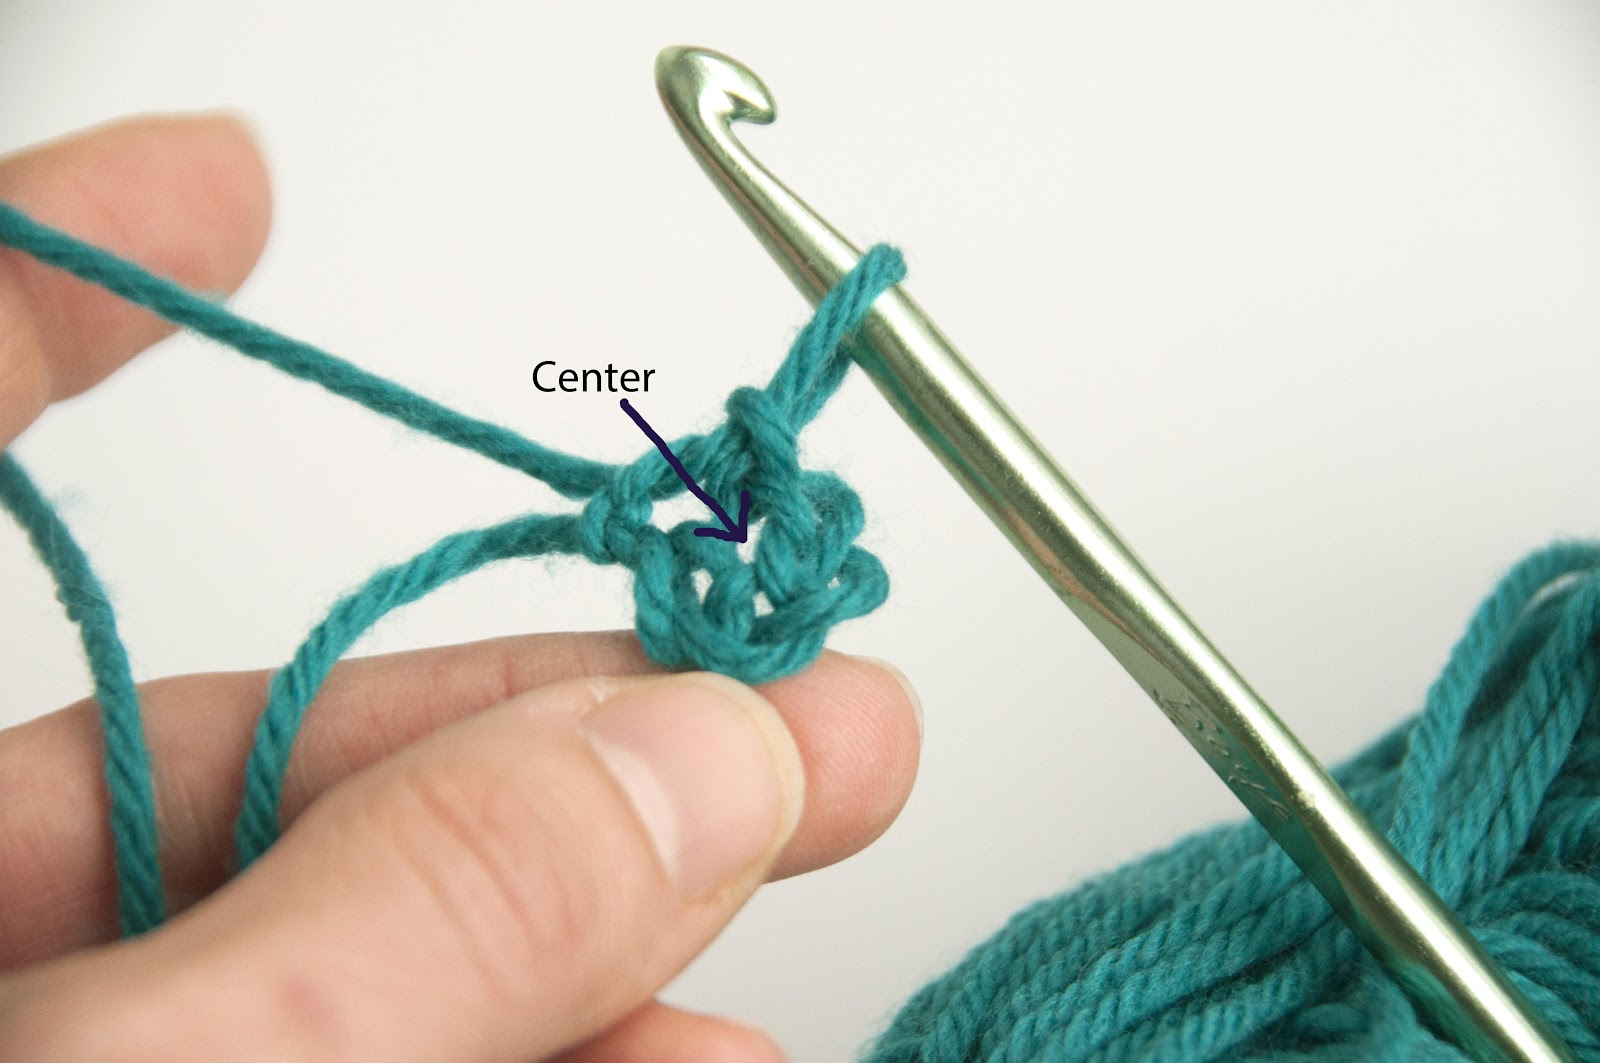 Crochet In The Round : How+to+Crochet+in+the+Round_DSC_0830.jpg